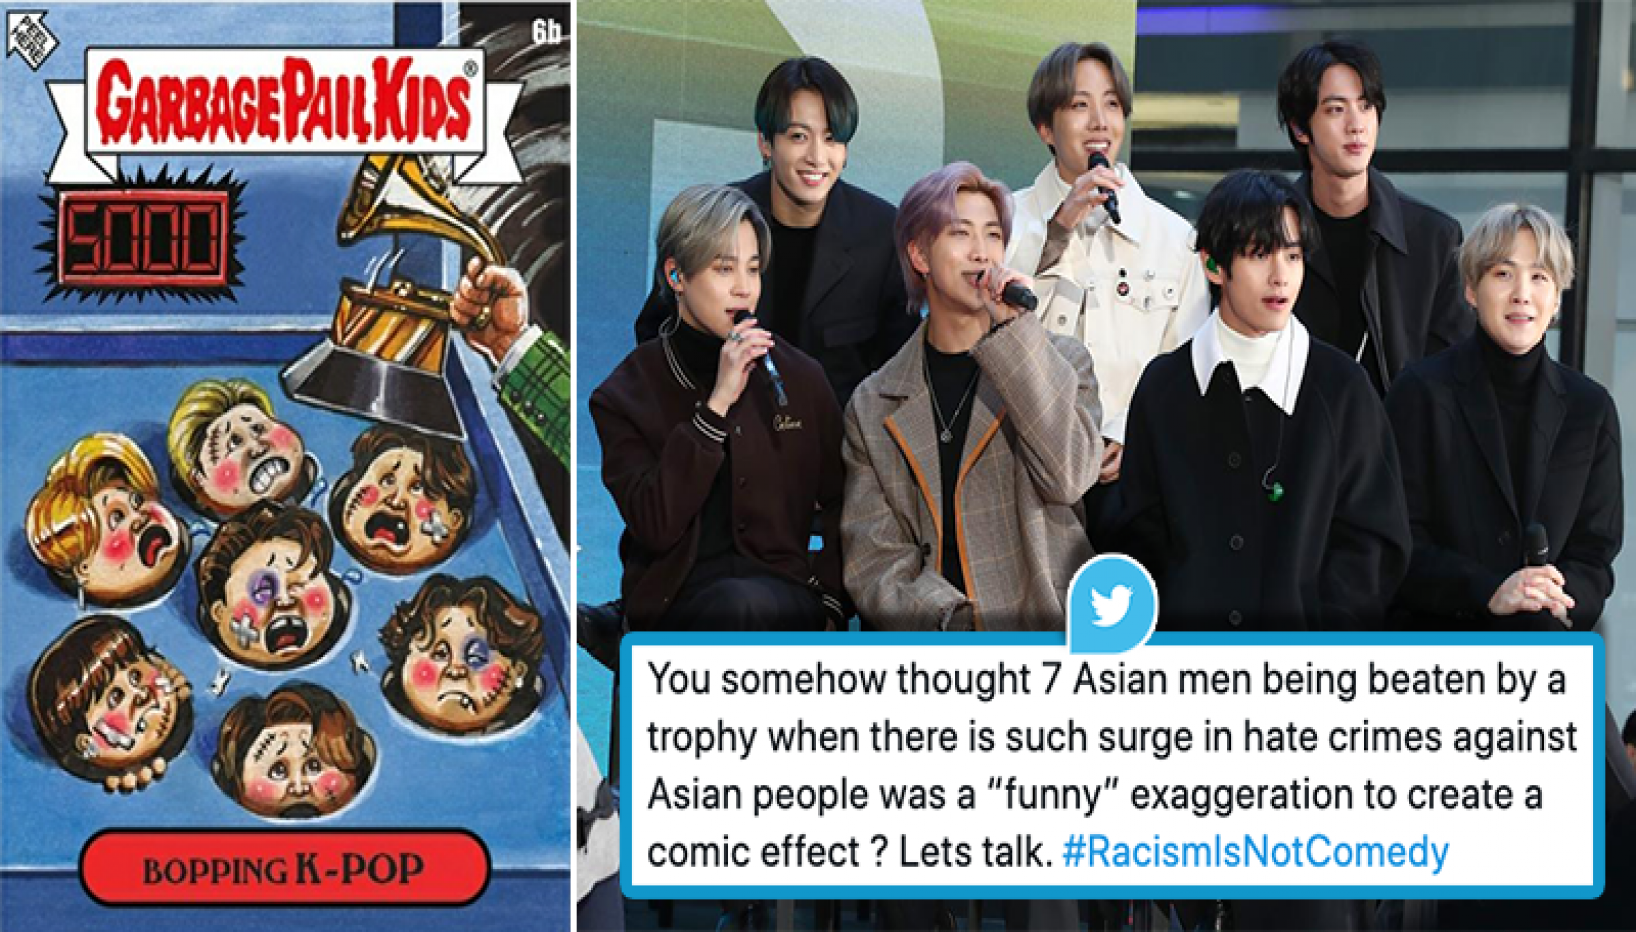 BTS Army Voices Anger Against Violent 'Satirical' Artwork On The Band; #RacismIsNotComedy Trends On Twitter